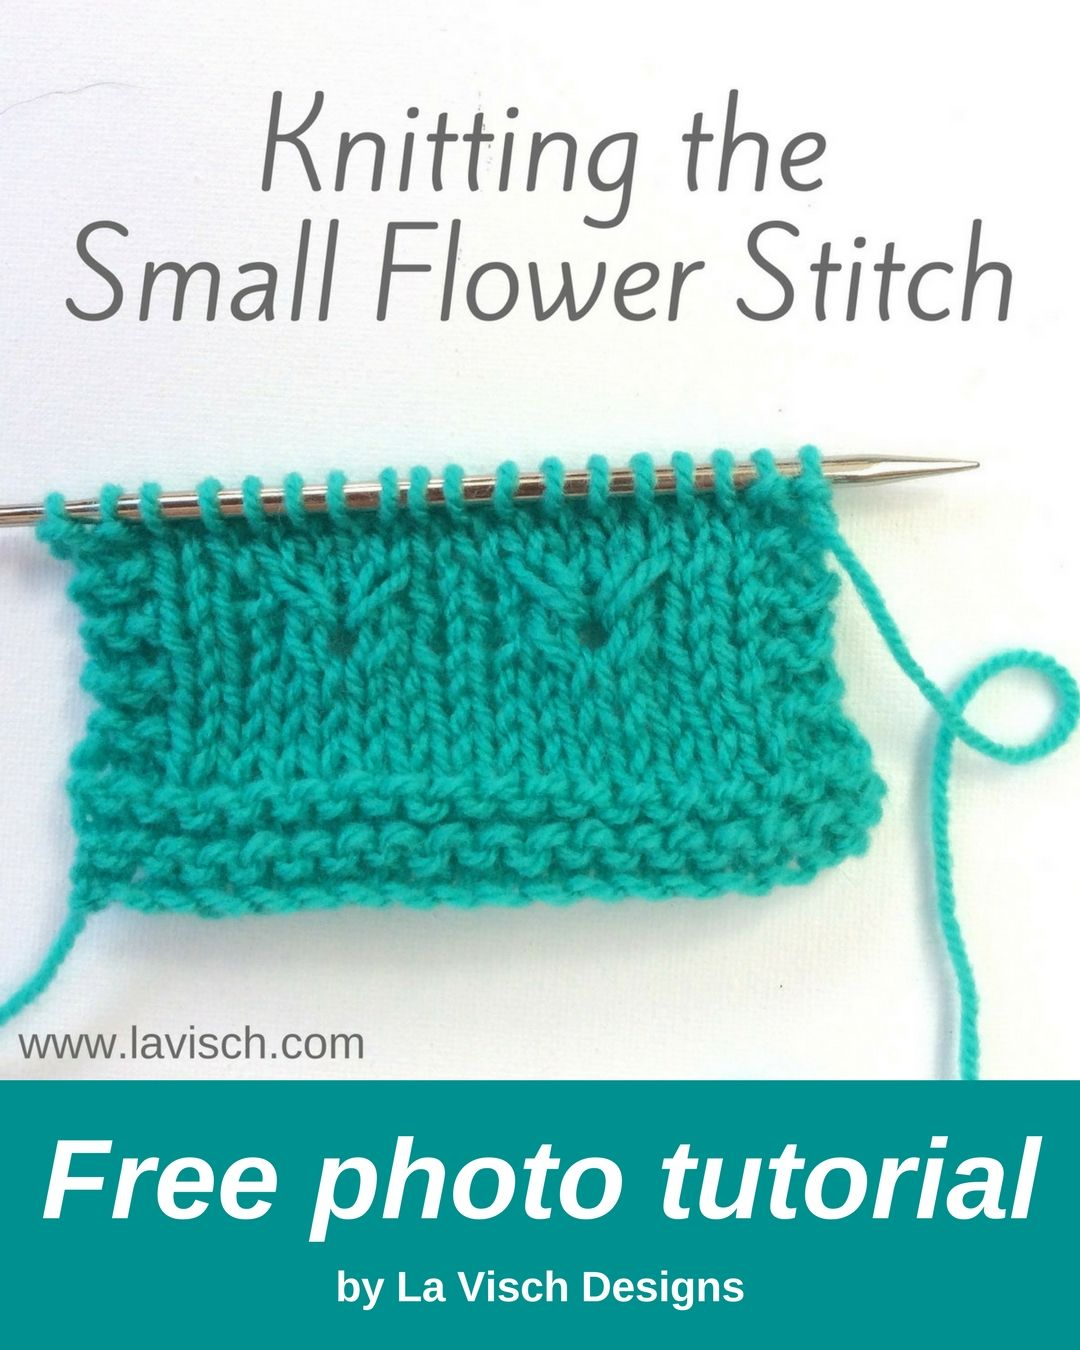 Lately I have found myself attracted to stitches that give the ...